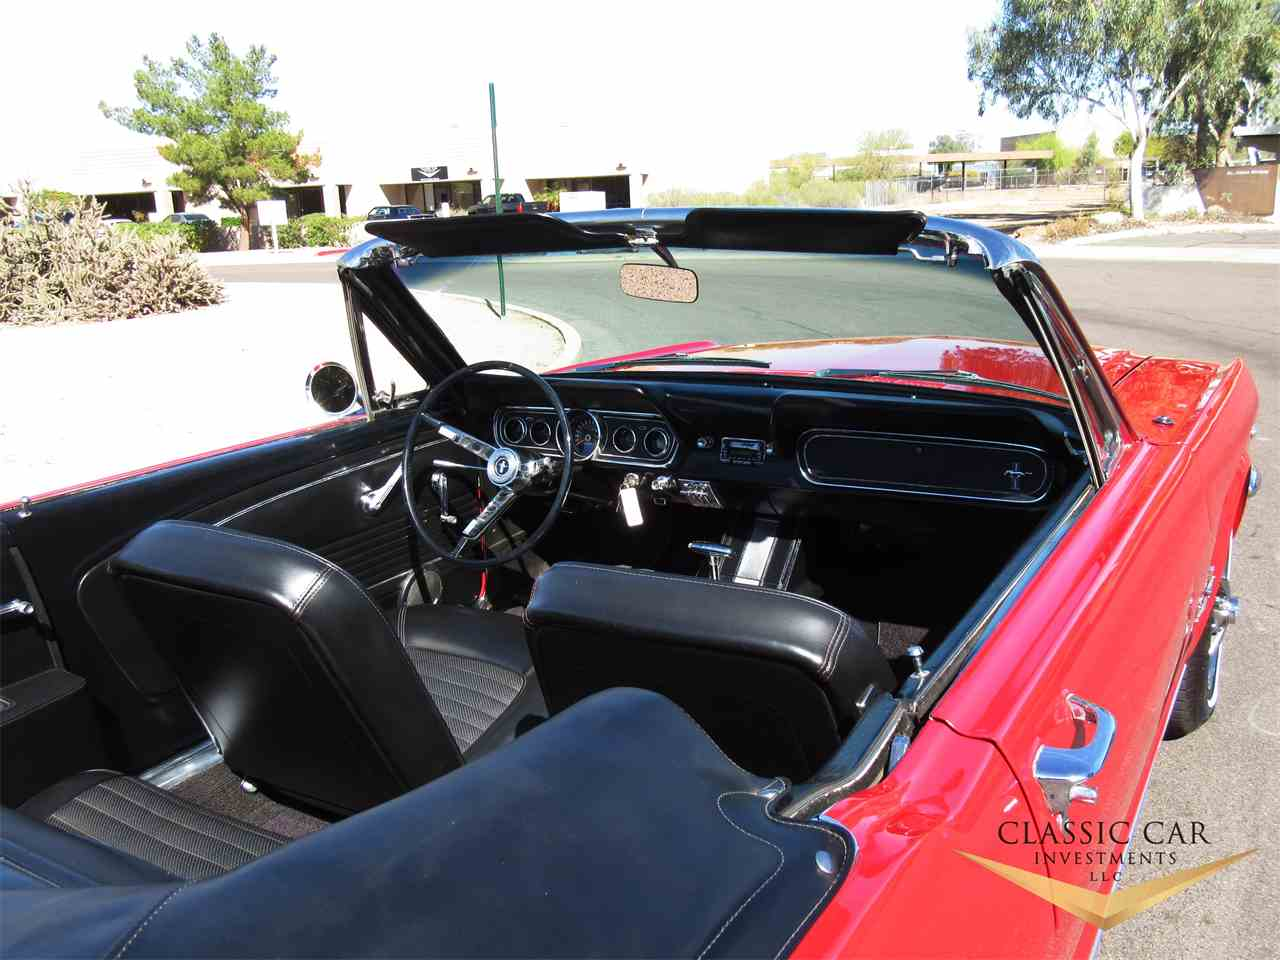 Large Picture of Classic '66 Mustang - $29,500.00 Offered by Classic Car Investments LLC - MTOM